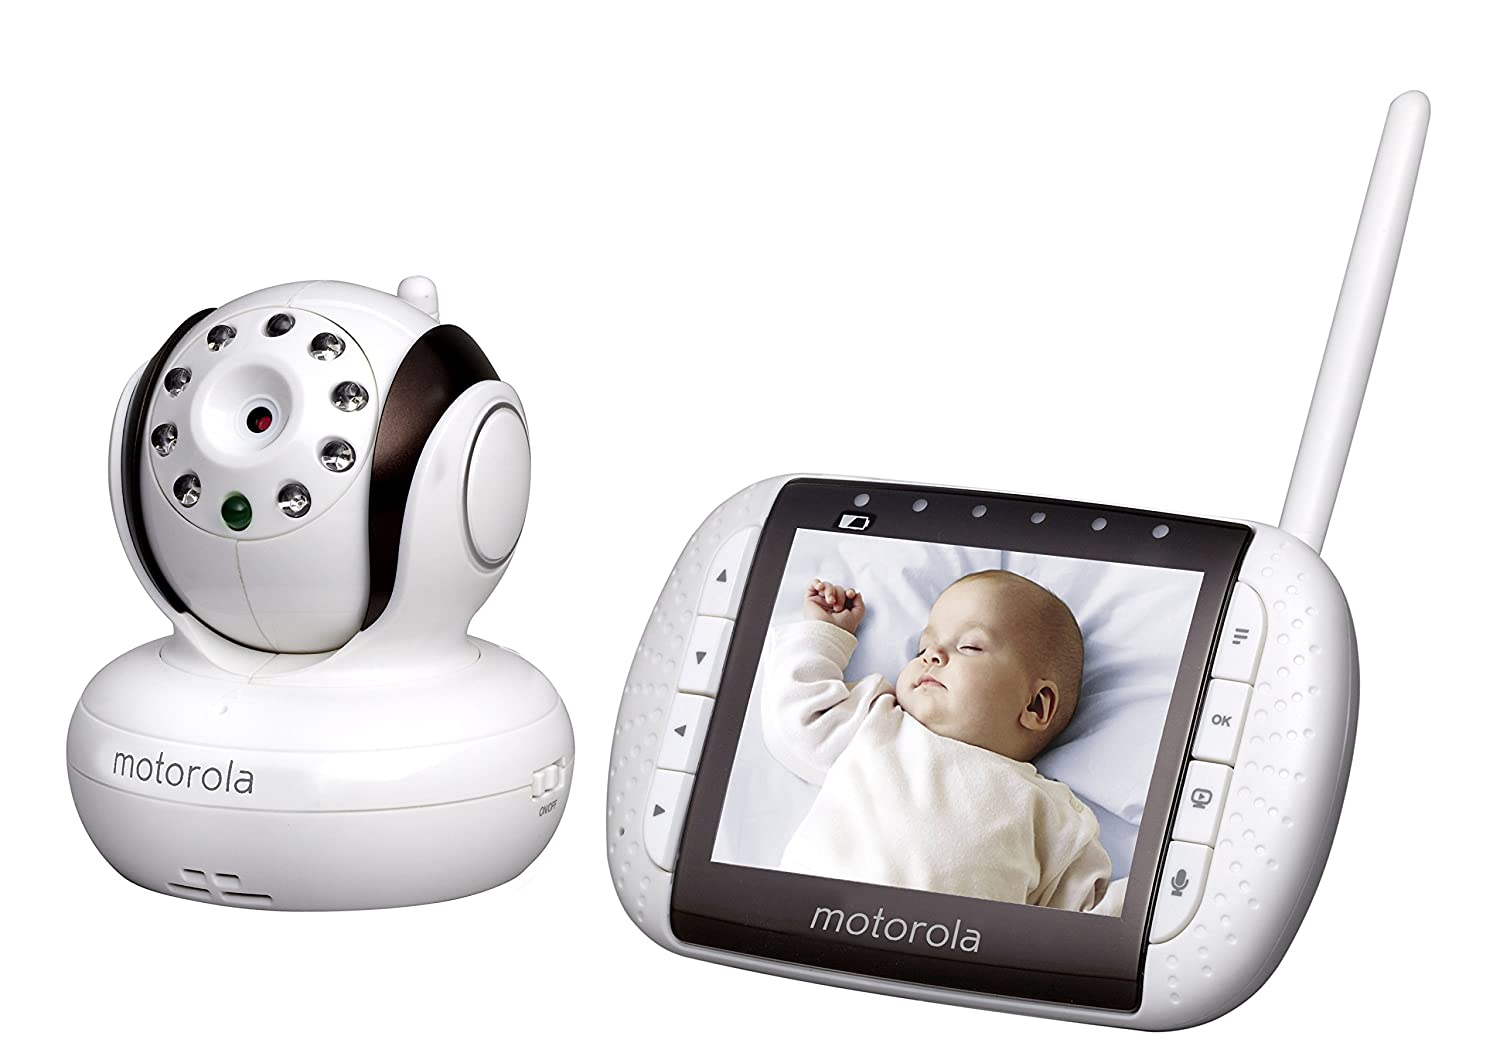 Motorola Mbp36 Remote Wireless Video Baby Monitor Paradigm 7 Wiring Diagram Withcolor Lcd Screen Surveillance Monitors